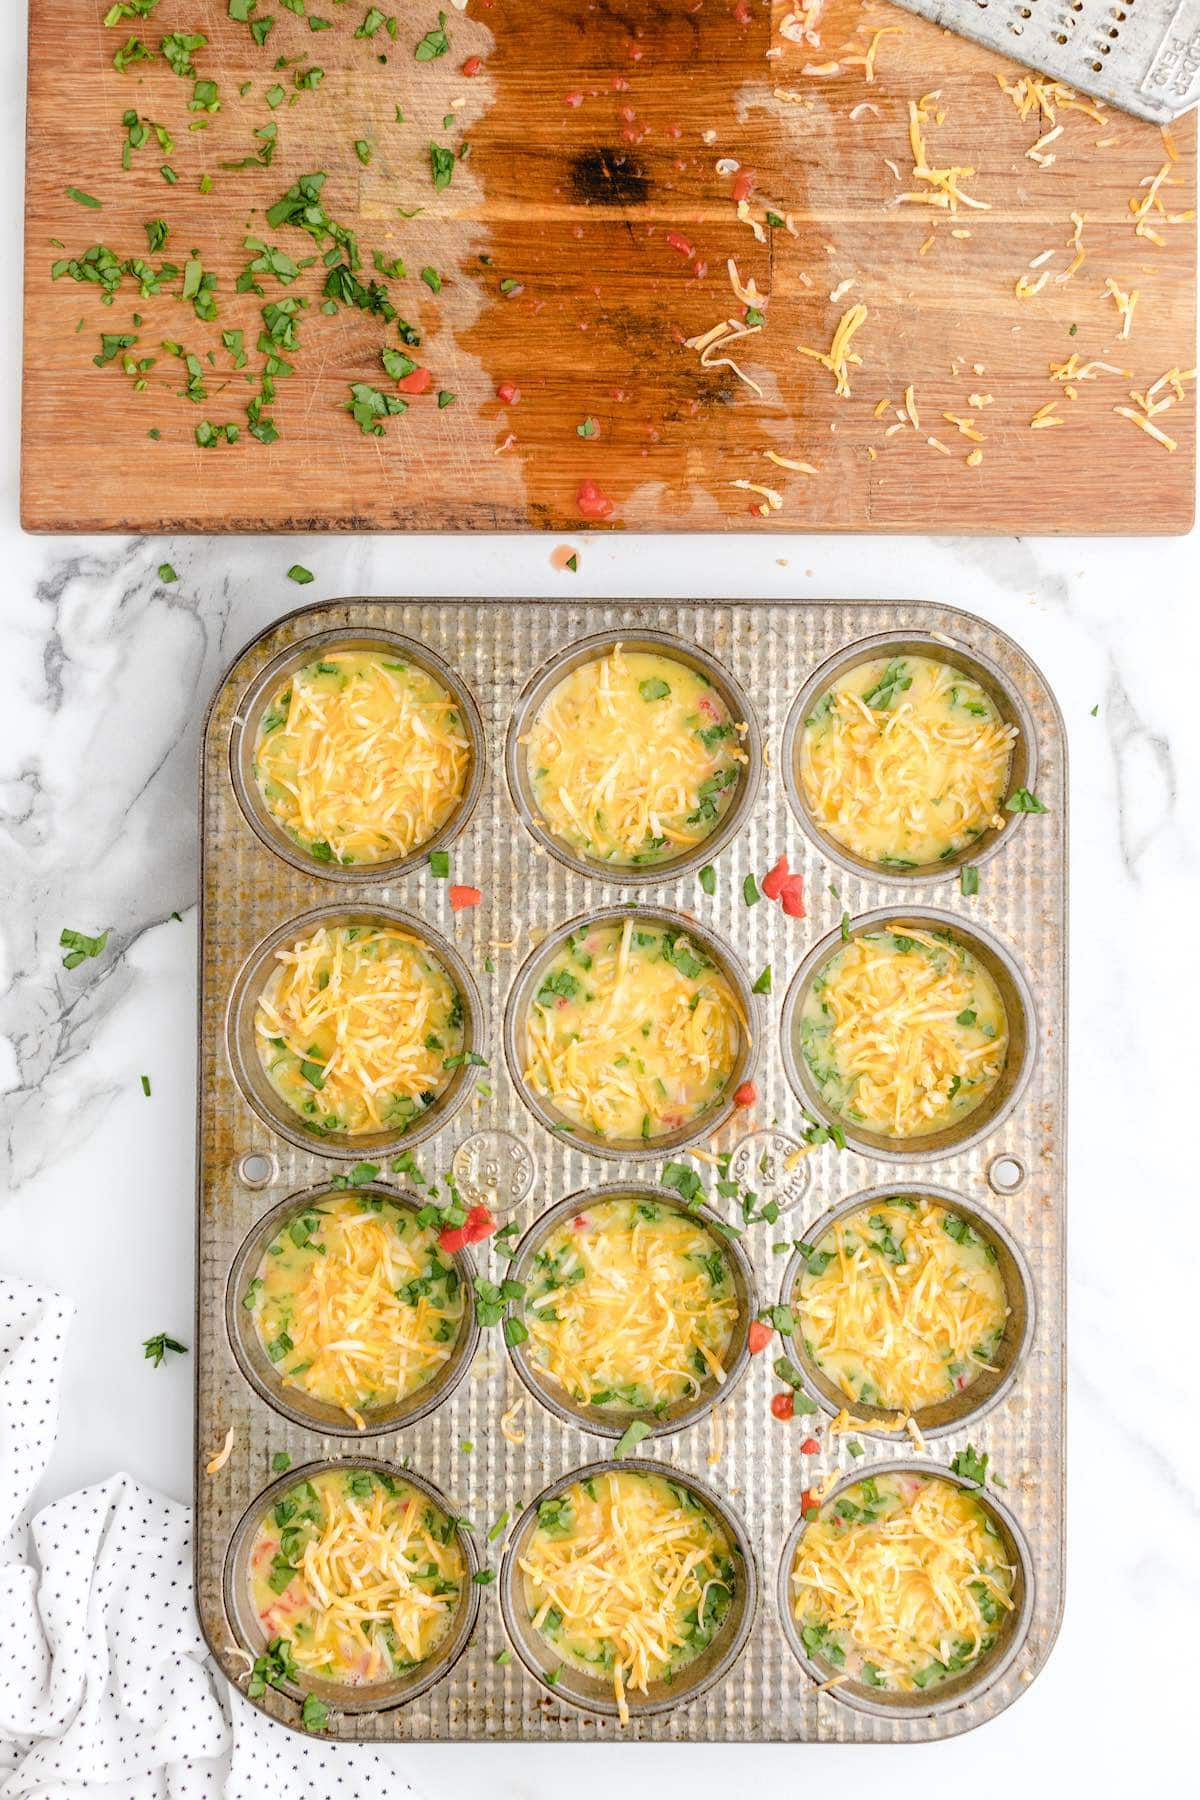 add cheese to each muffin stain